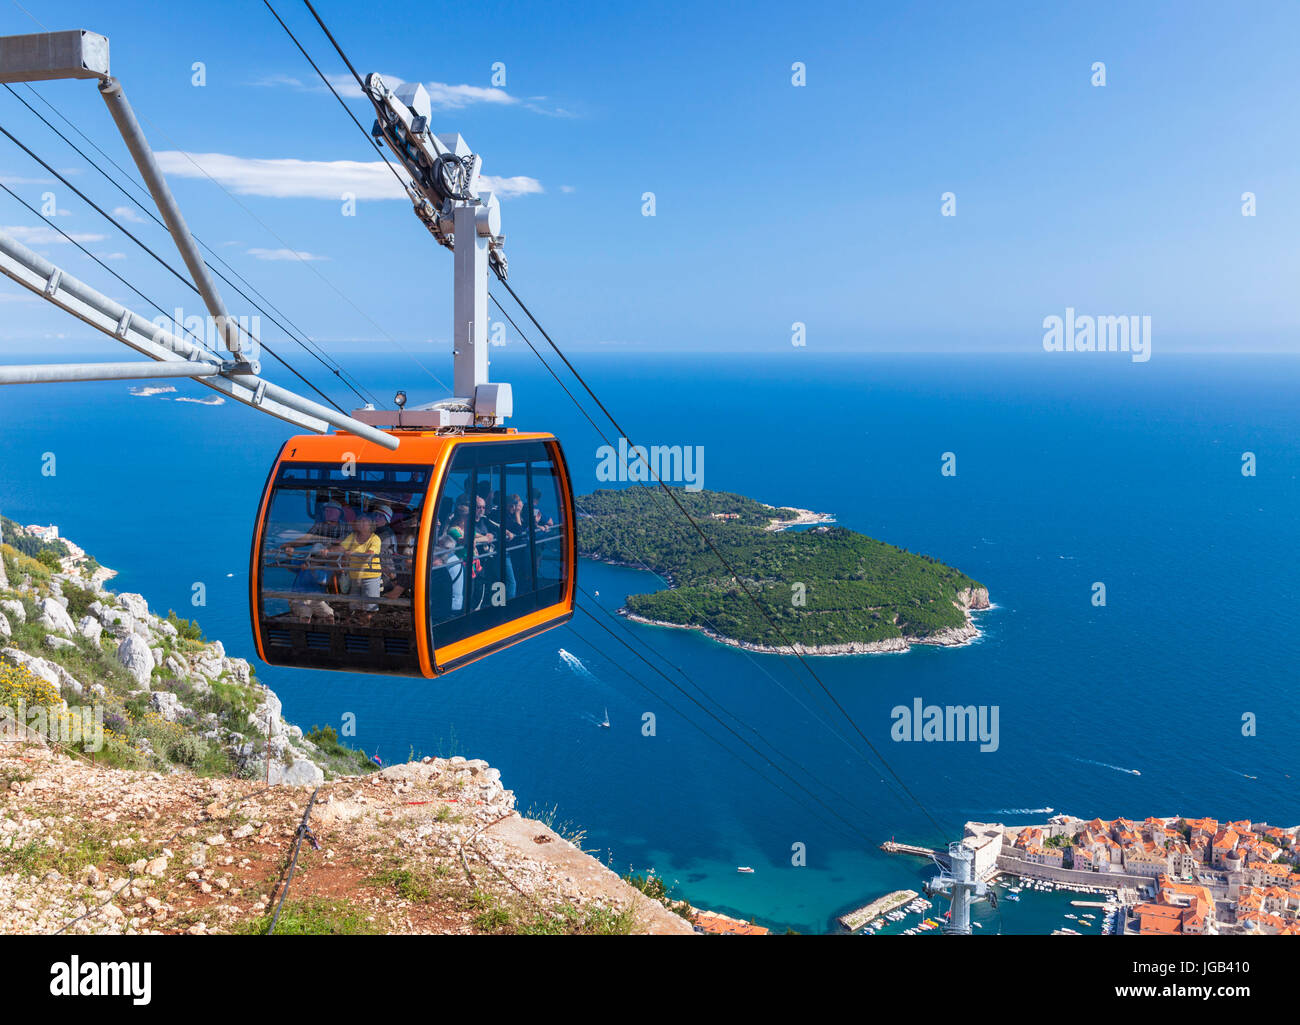 Dubrovnik Croatia Dalmatian coast dubrovnik Tourists in Cable car up Mount Srd Dubrovnik Old Town aerial view Lokrum - Stock Image